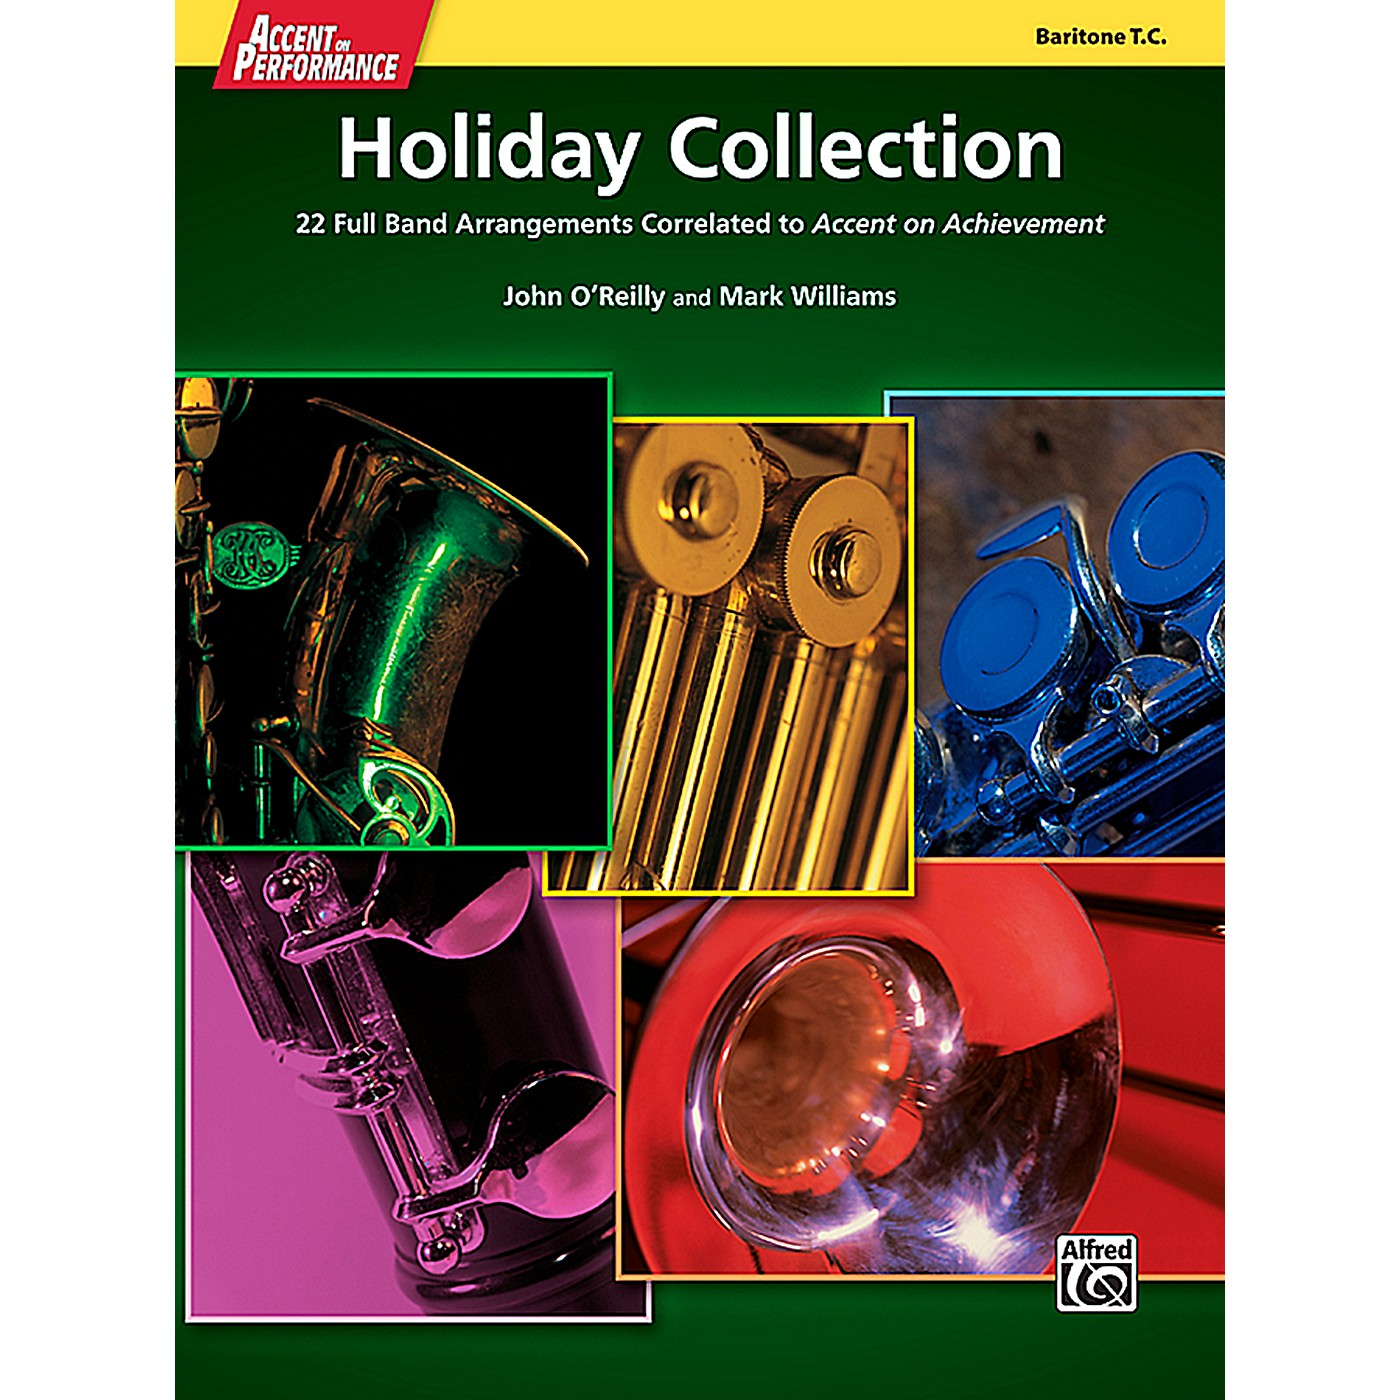 Alfred Accent on Performance Holiday Collection Baritone Treble Clef Book thumbnail